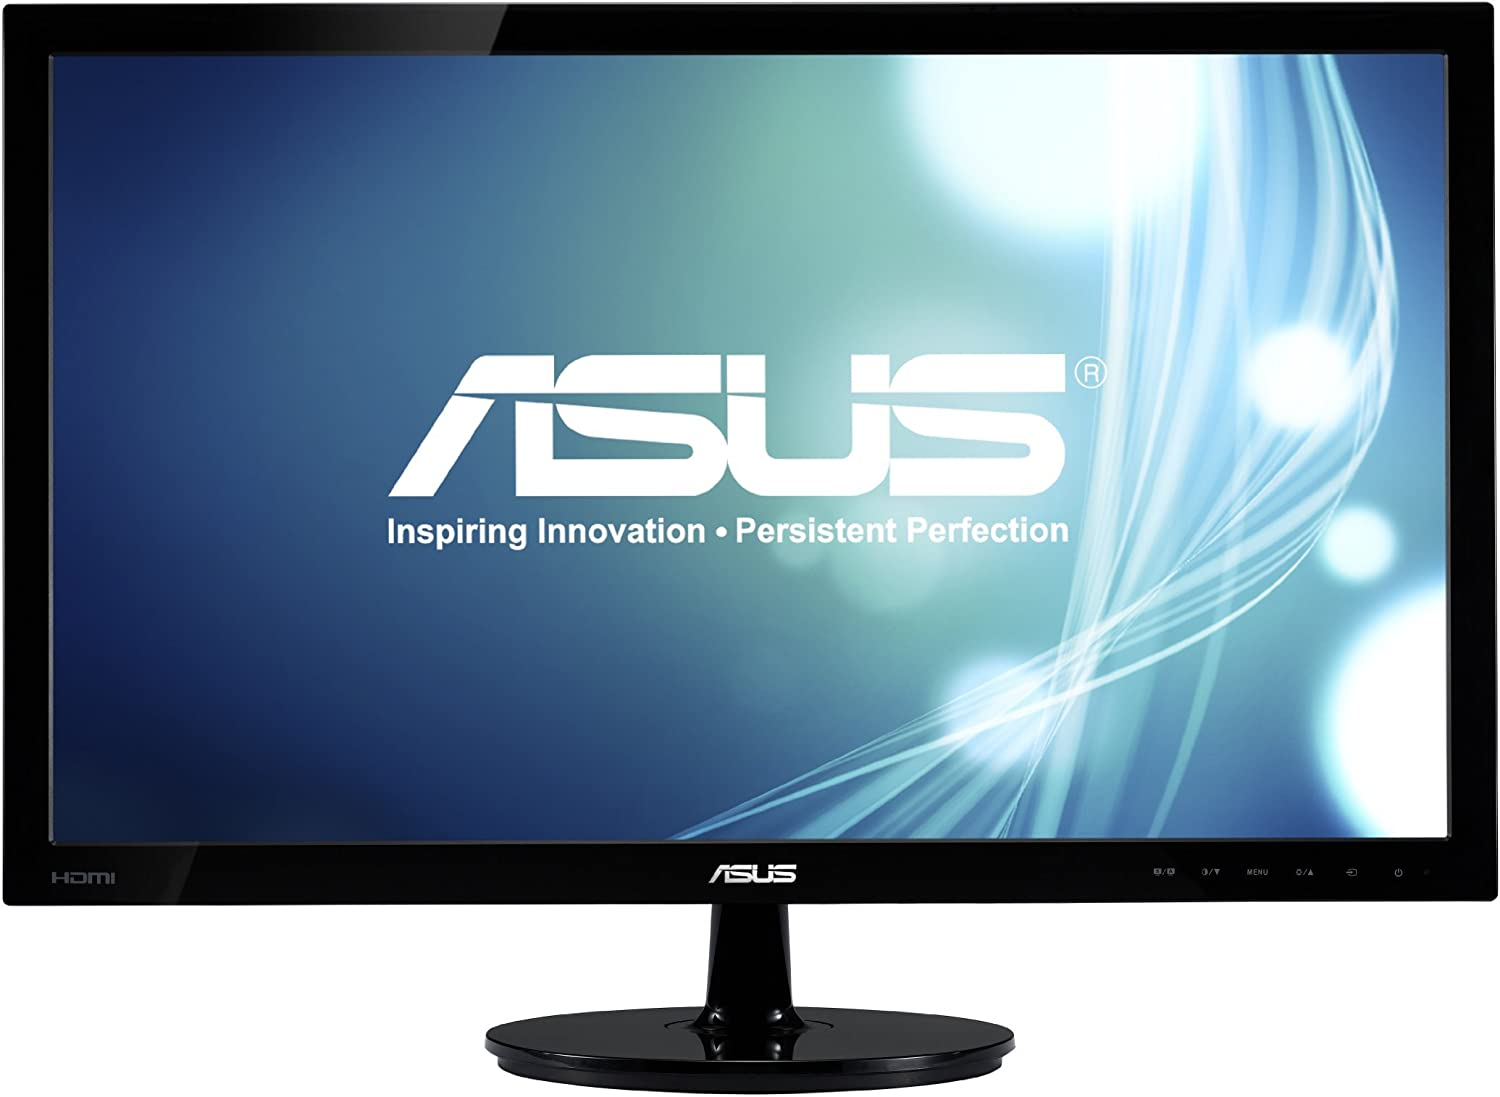 ASUS VS228H-P 21.5' Full HD 1920x1080 HDMI DVI VGA Back-lit LED Monitor (Renewed)